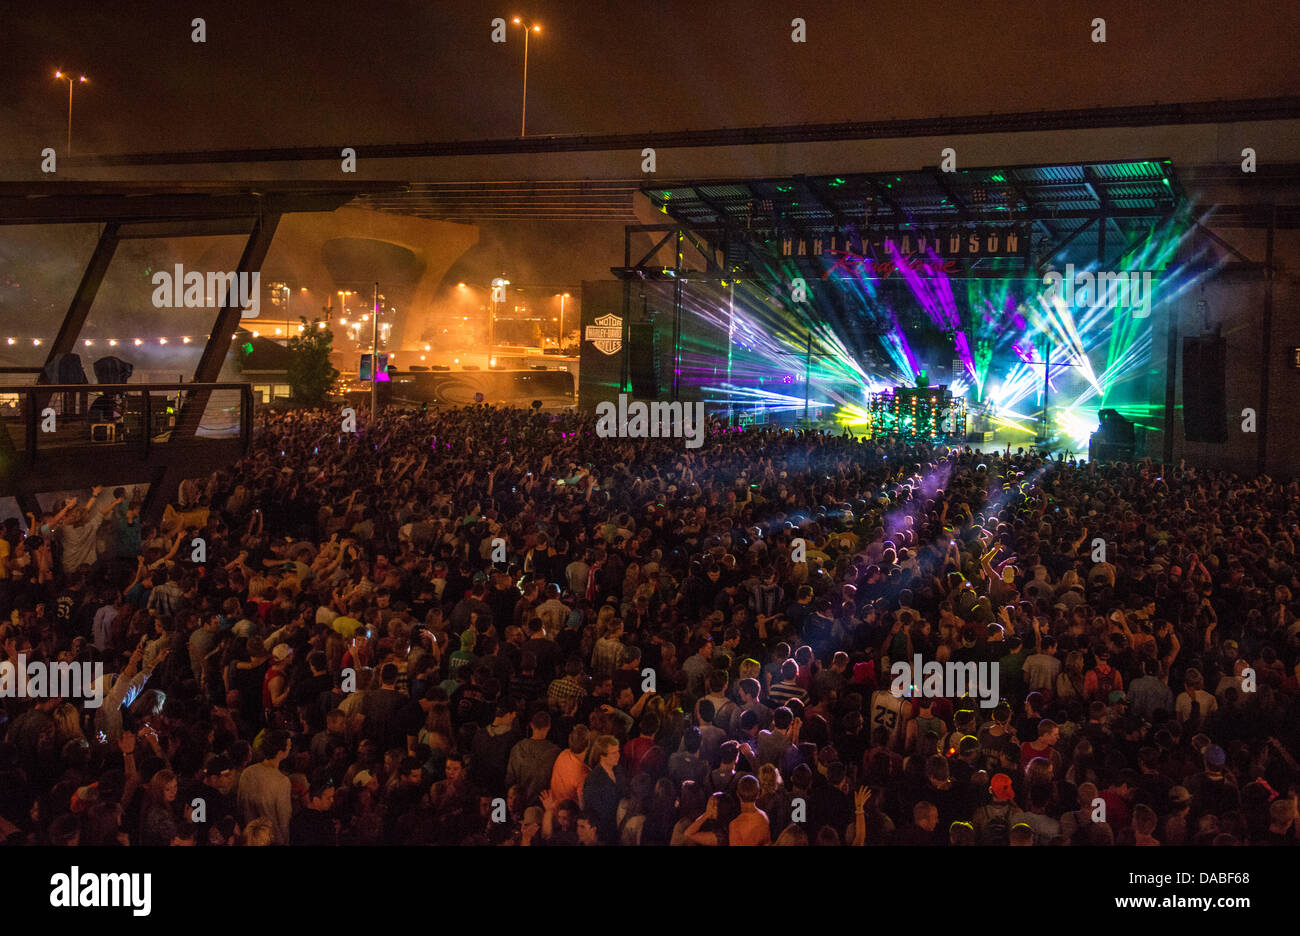 Pretty Lights performing live - Stock Image